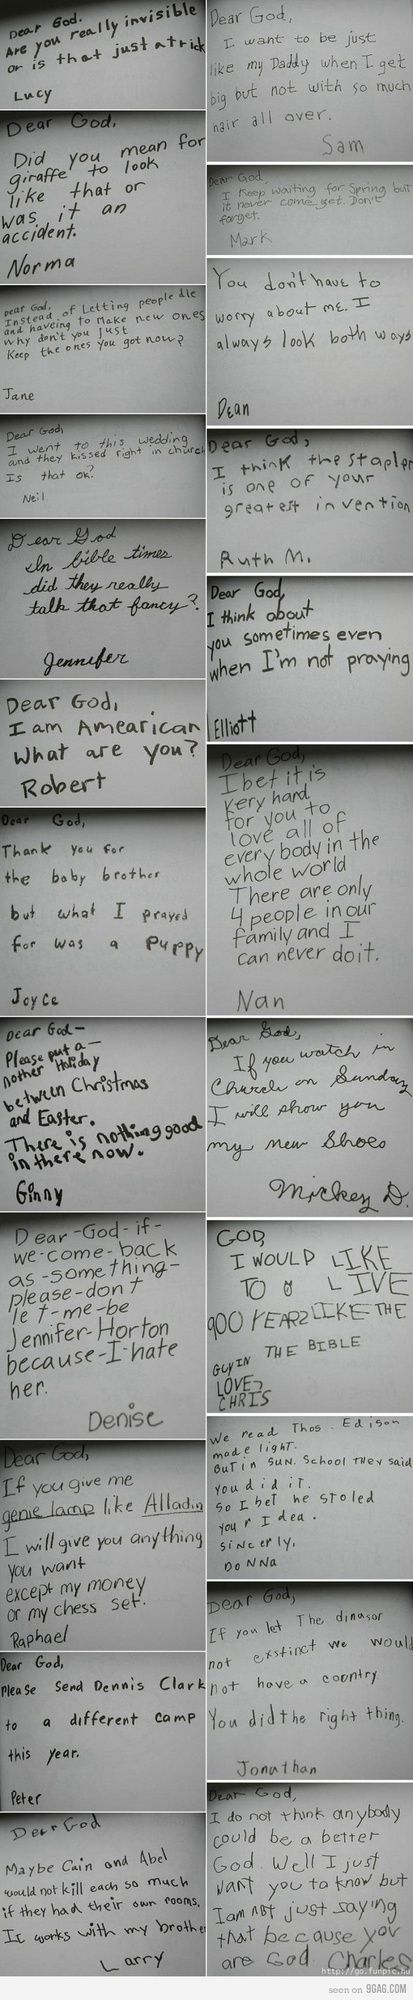 Some examples of why kids write the funniest things.